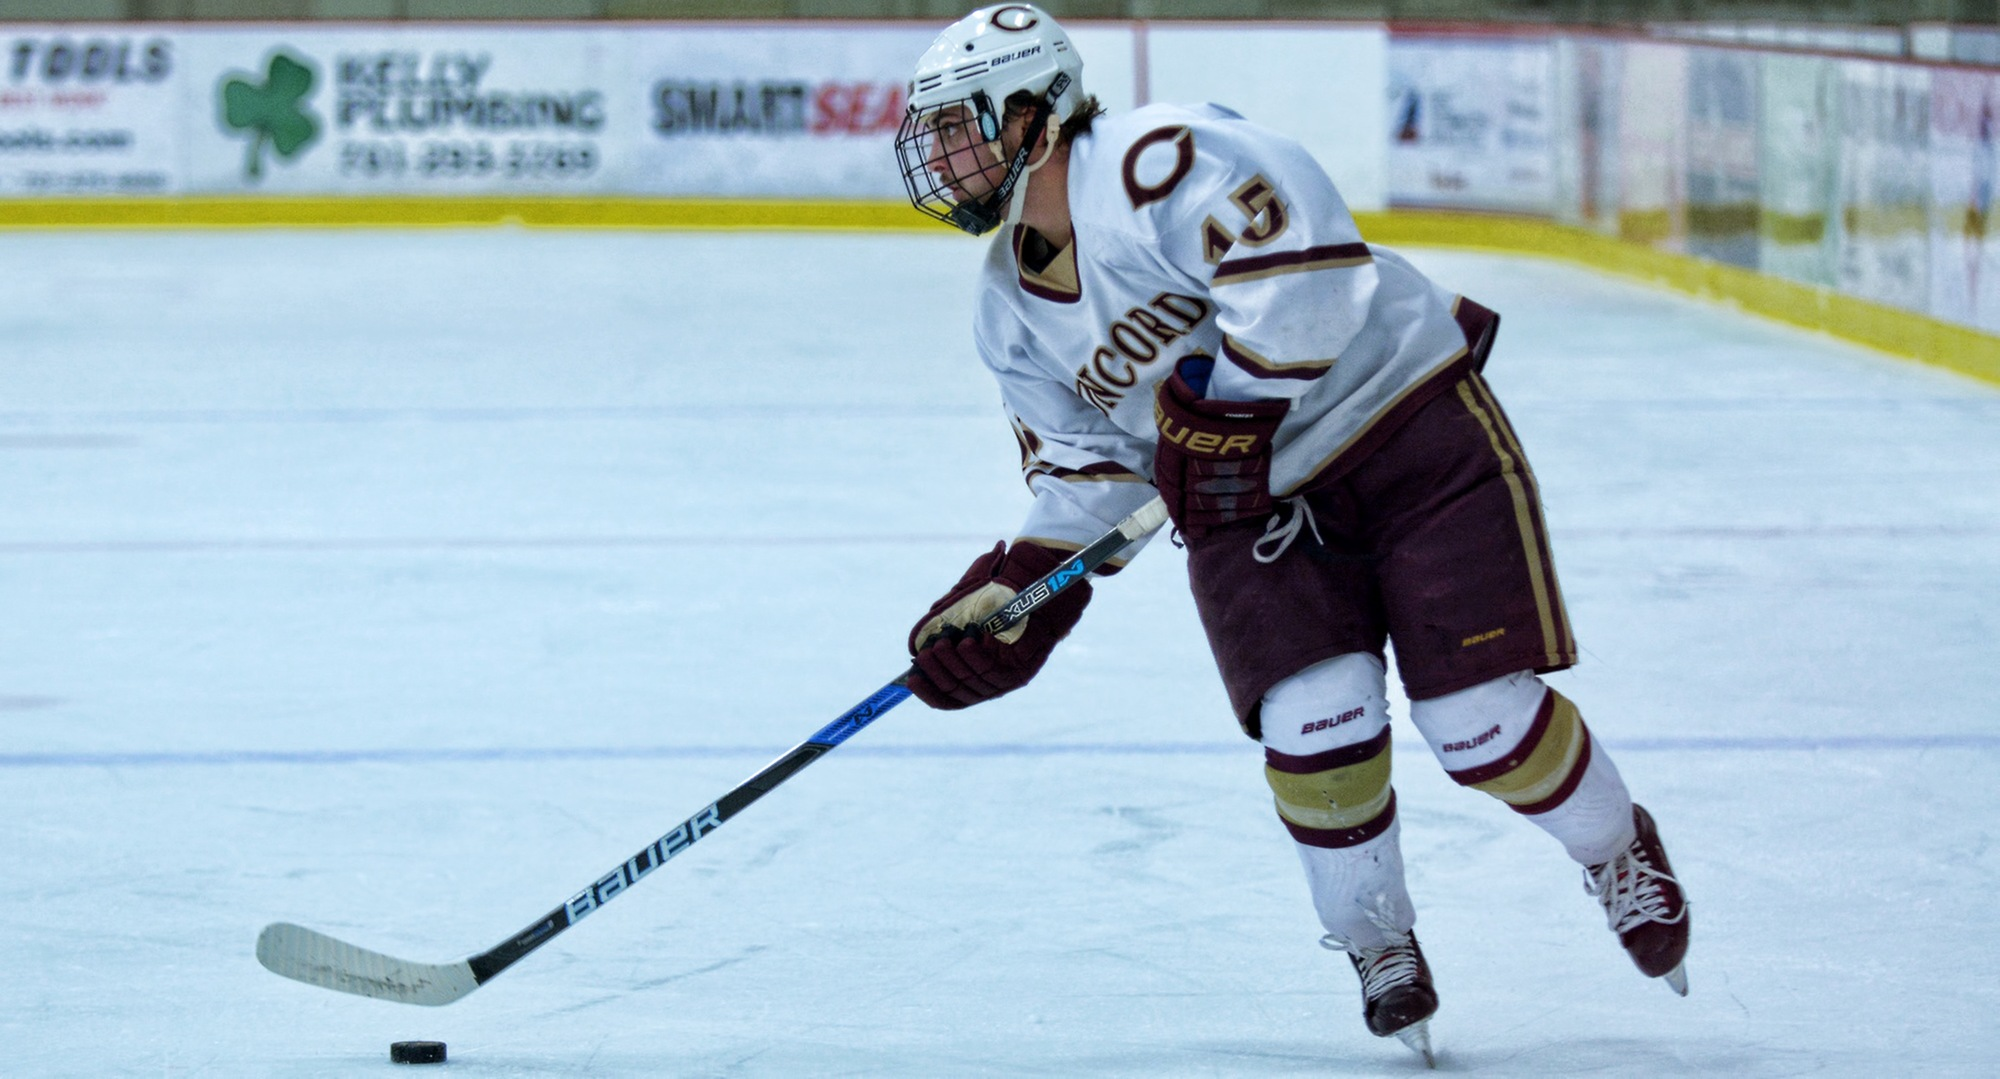 Senior Mario Bianchi scored five goals in the Cobbers' two wins at the MIAC Showcase.